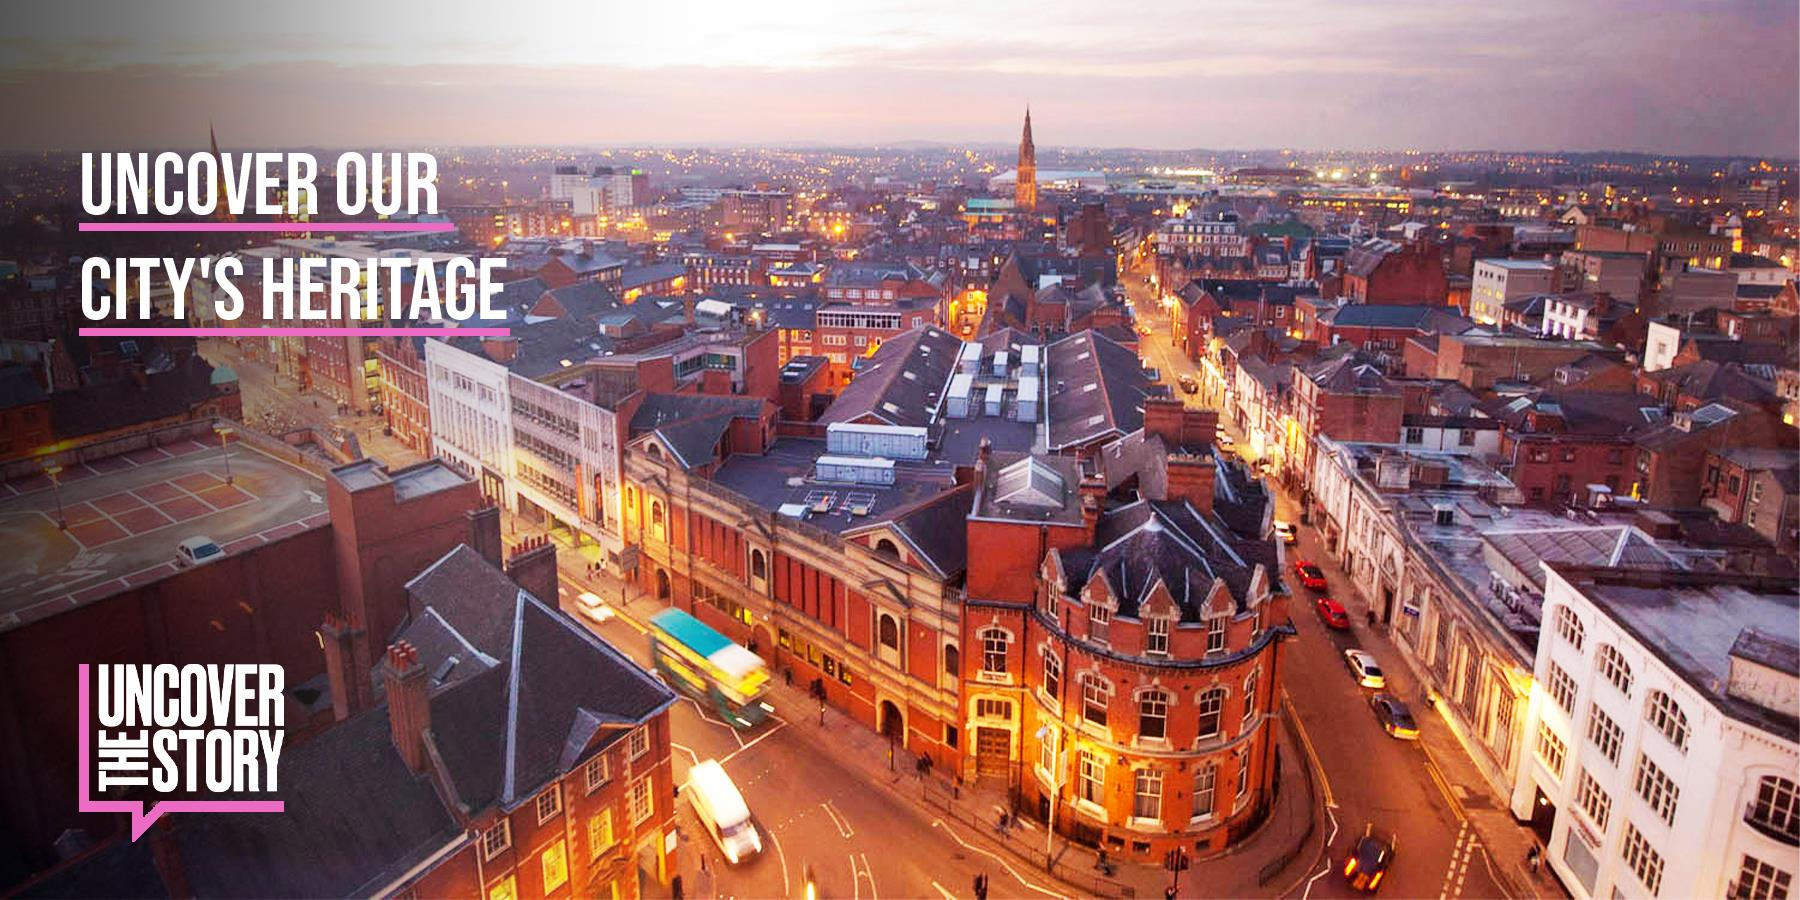 Uncover our City's Heritage HEADER IMAGE